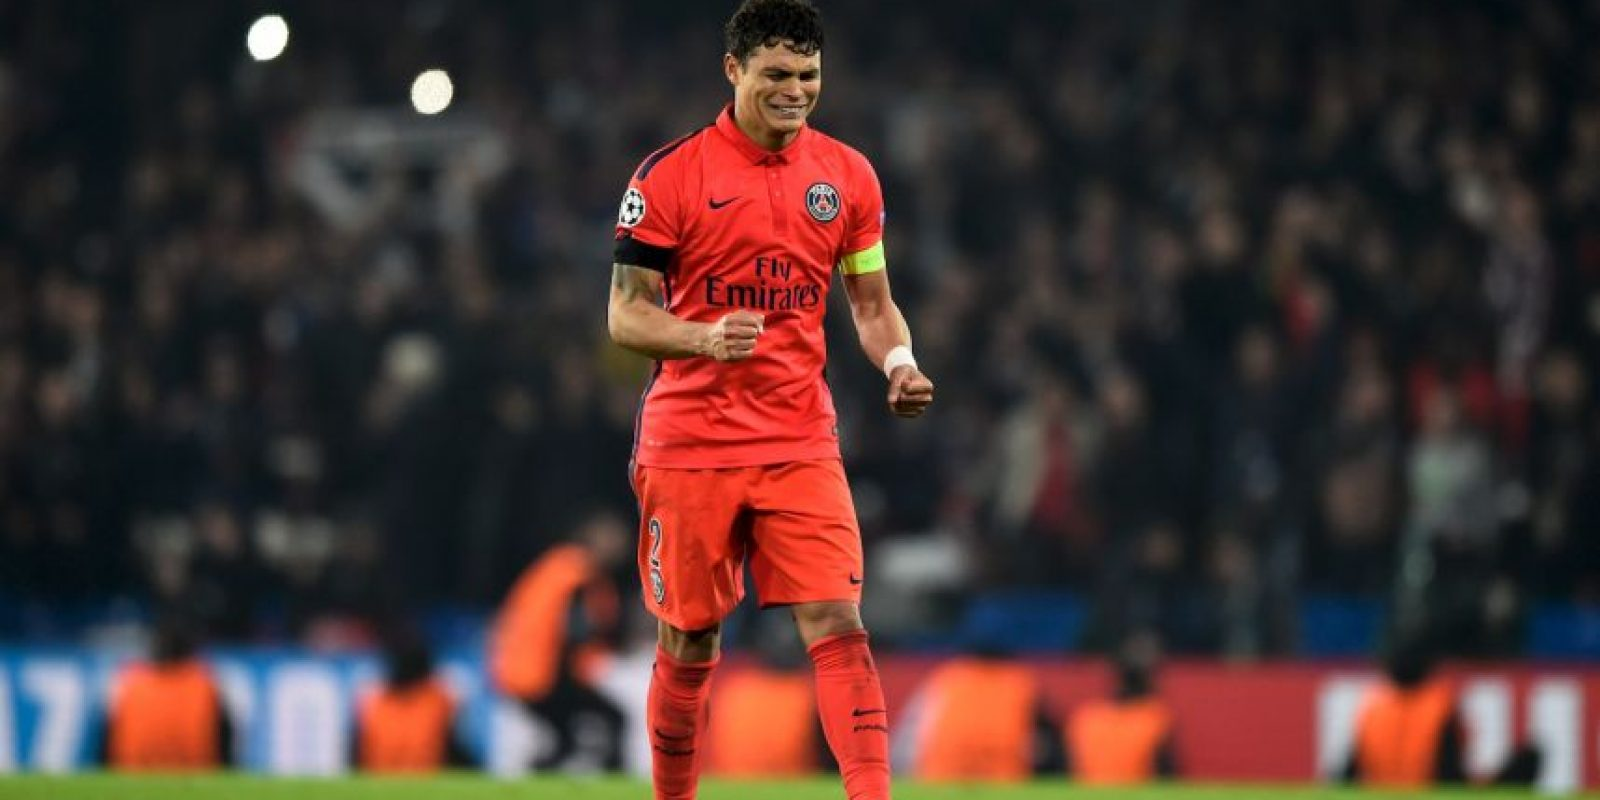 4. Thiago Silva Foto: Getty Images